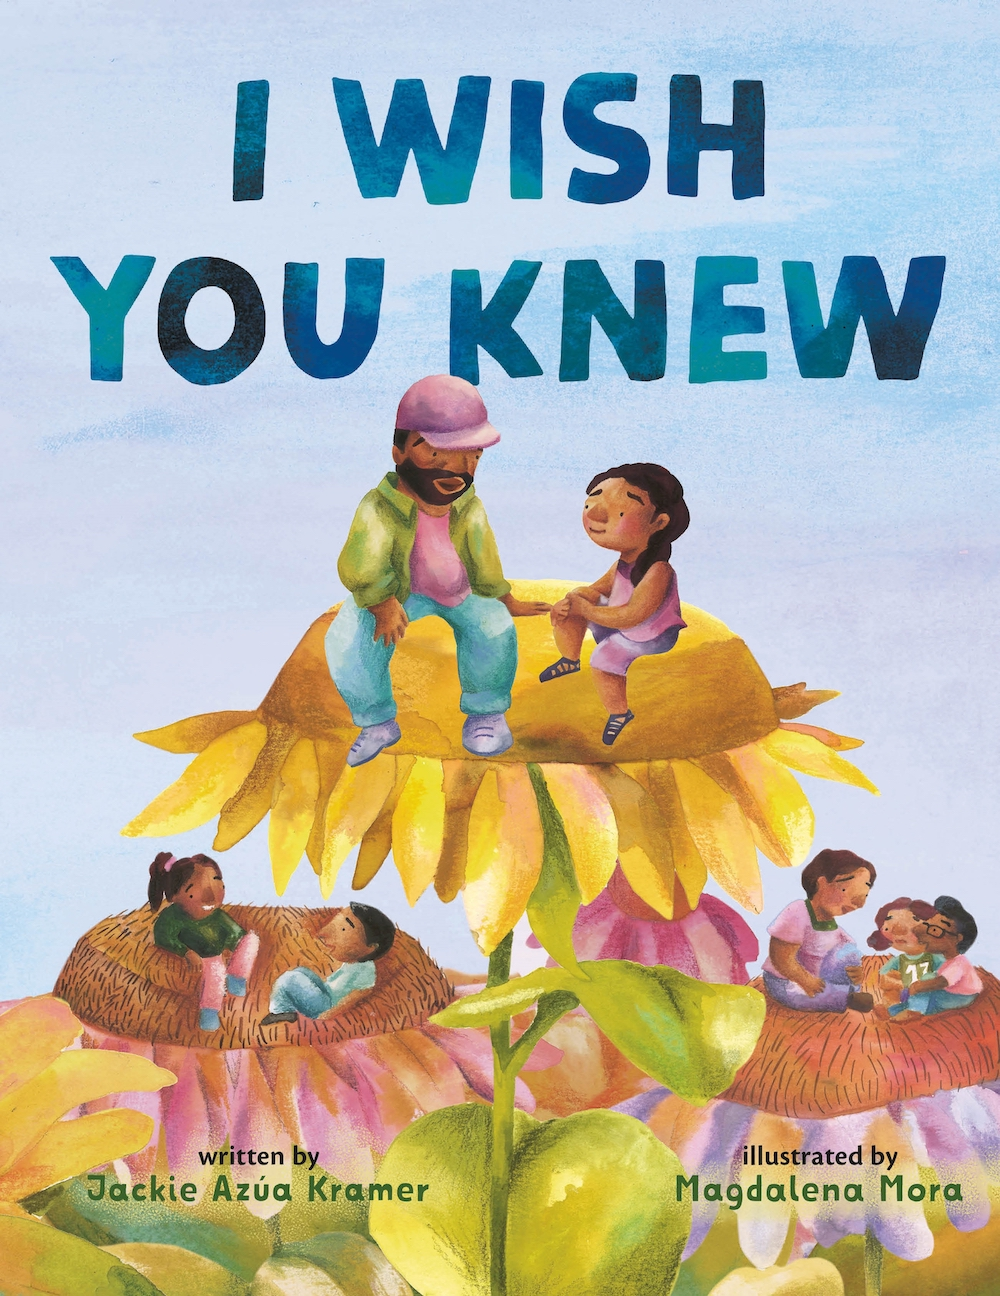 I Wish You Knew book cover